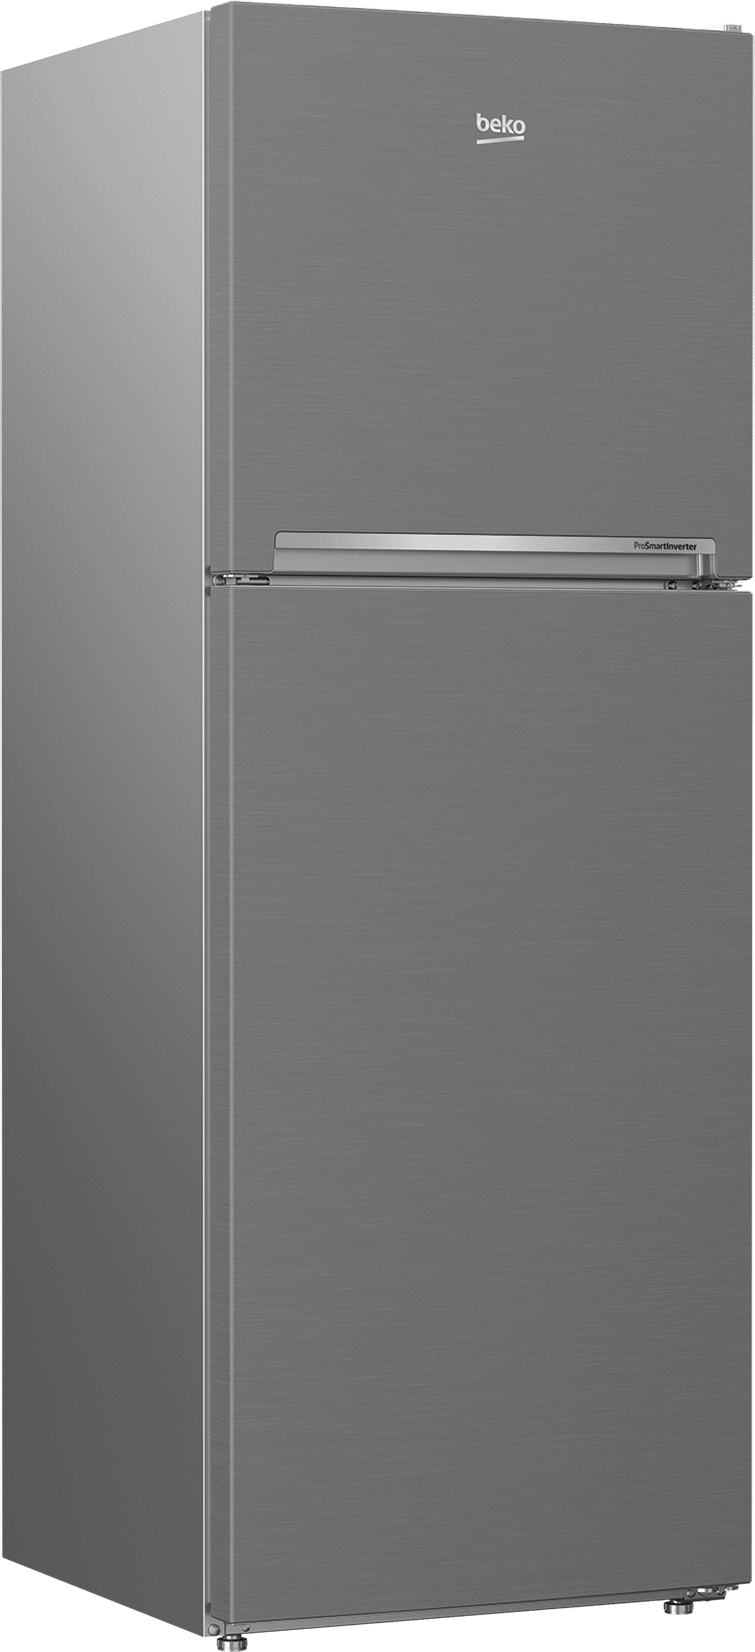 Fridge Freezer (Freezer Top, 60 cm) RDNT340I50VP